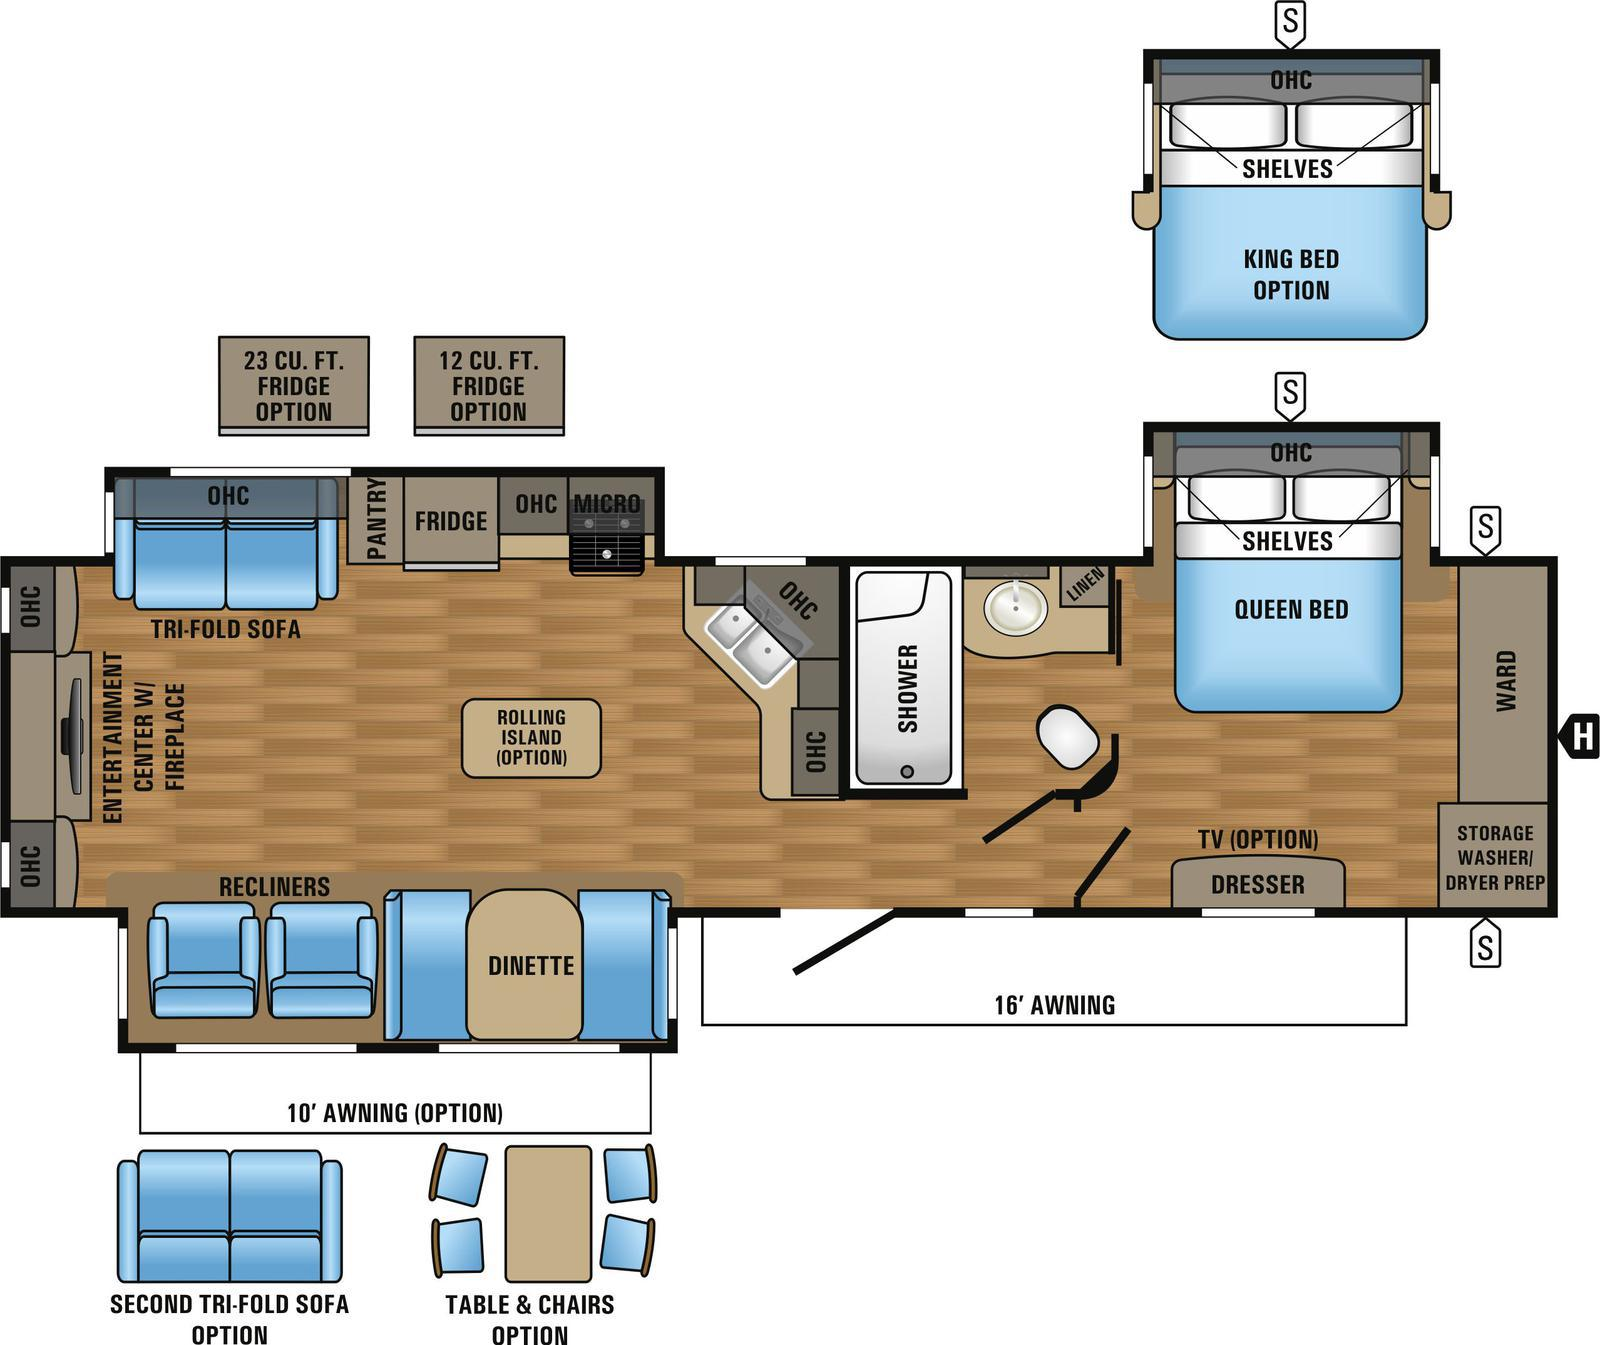 338RETS Floorplan